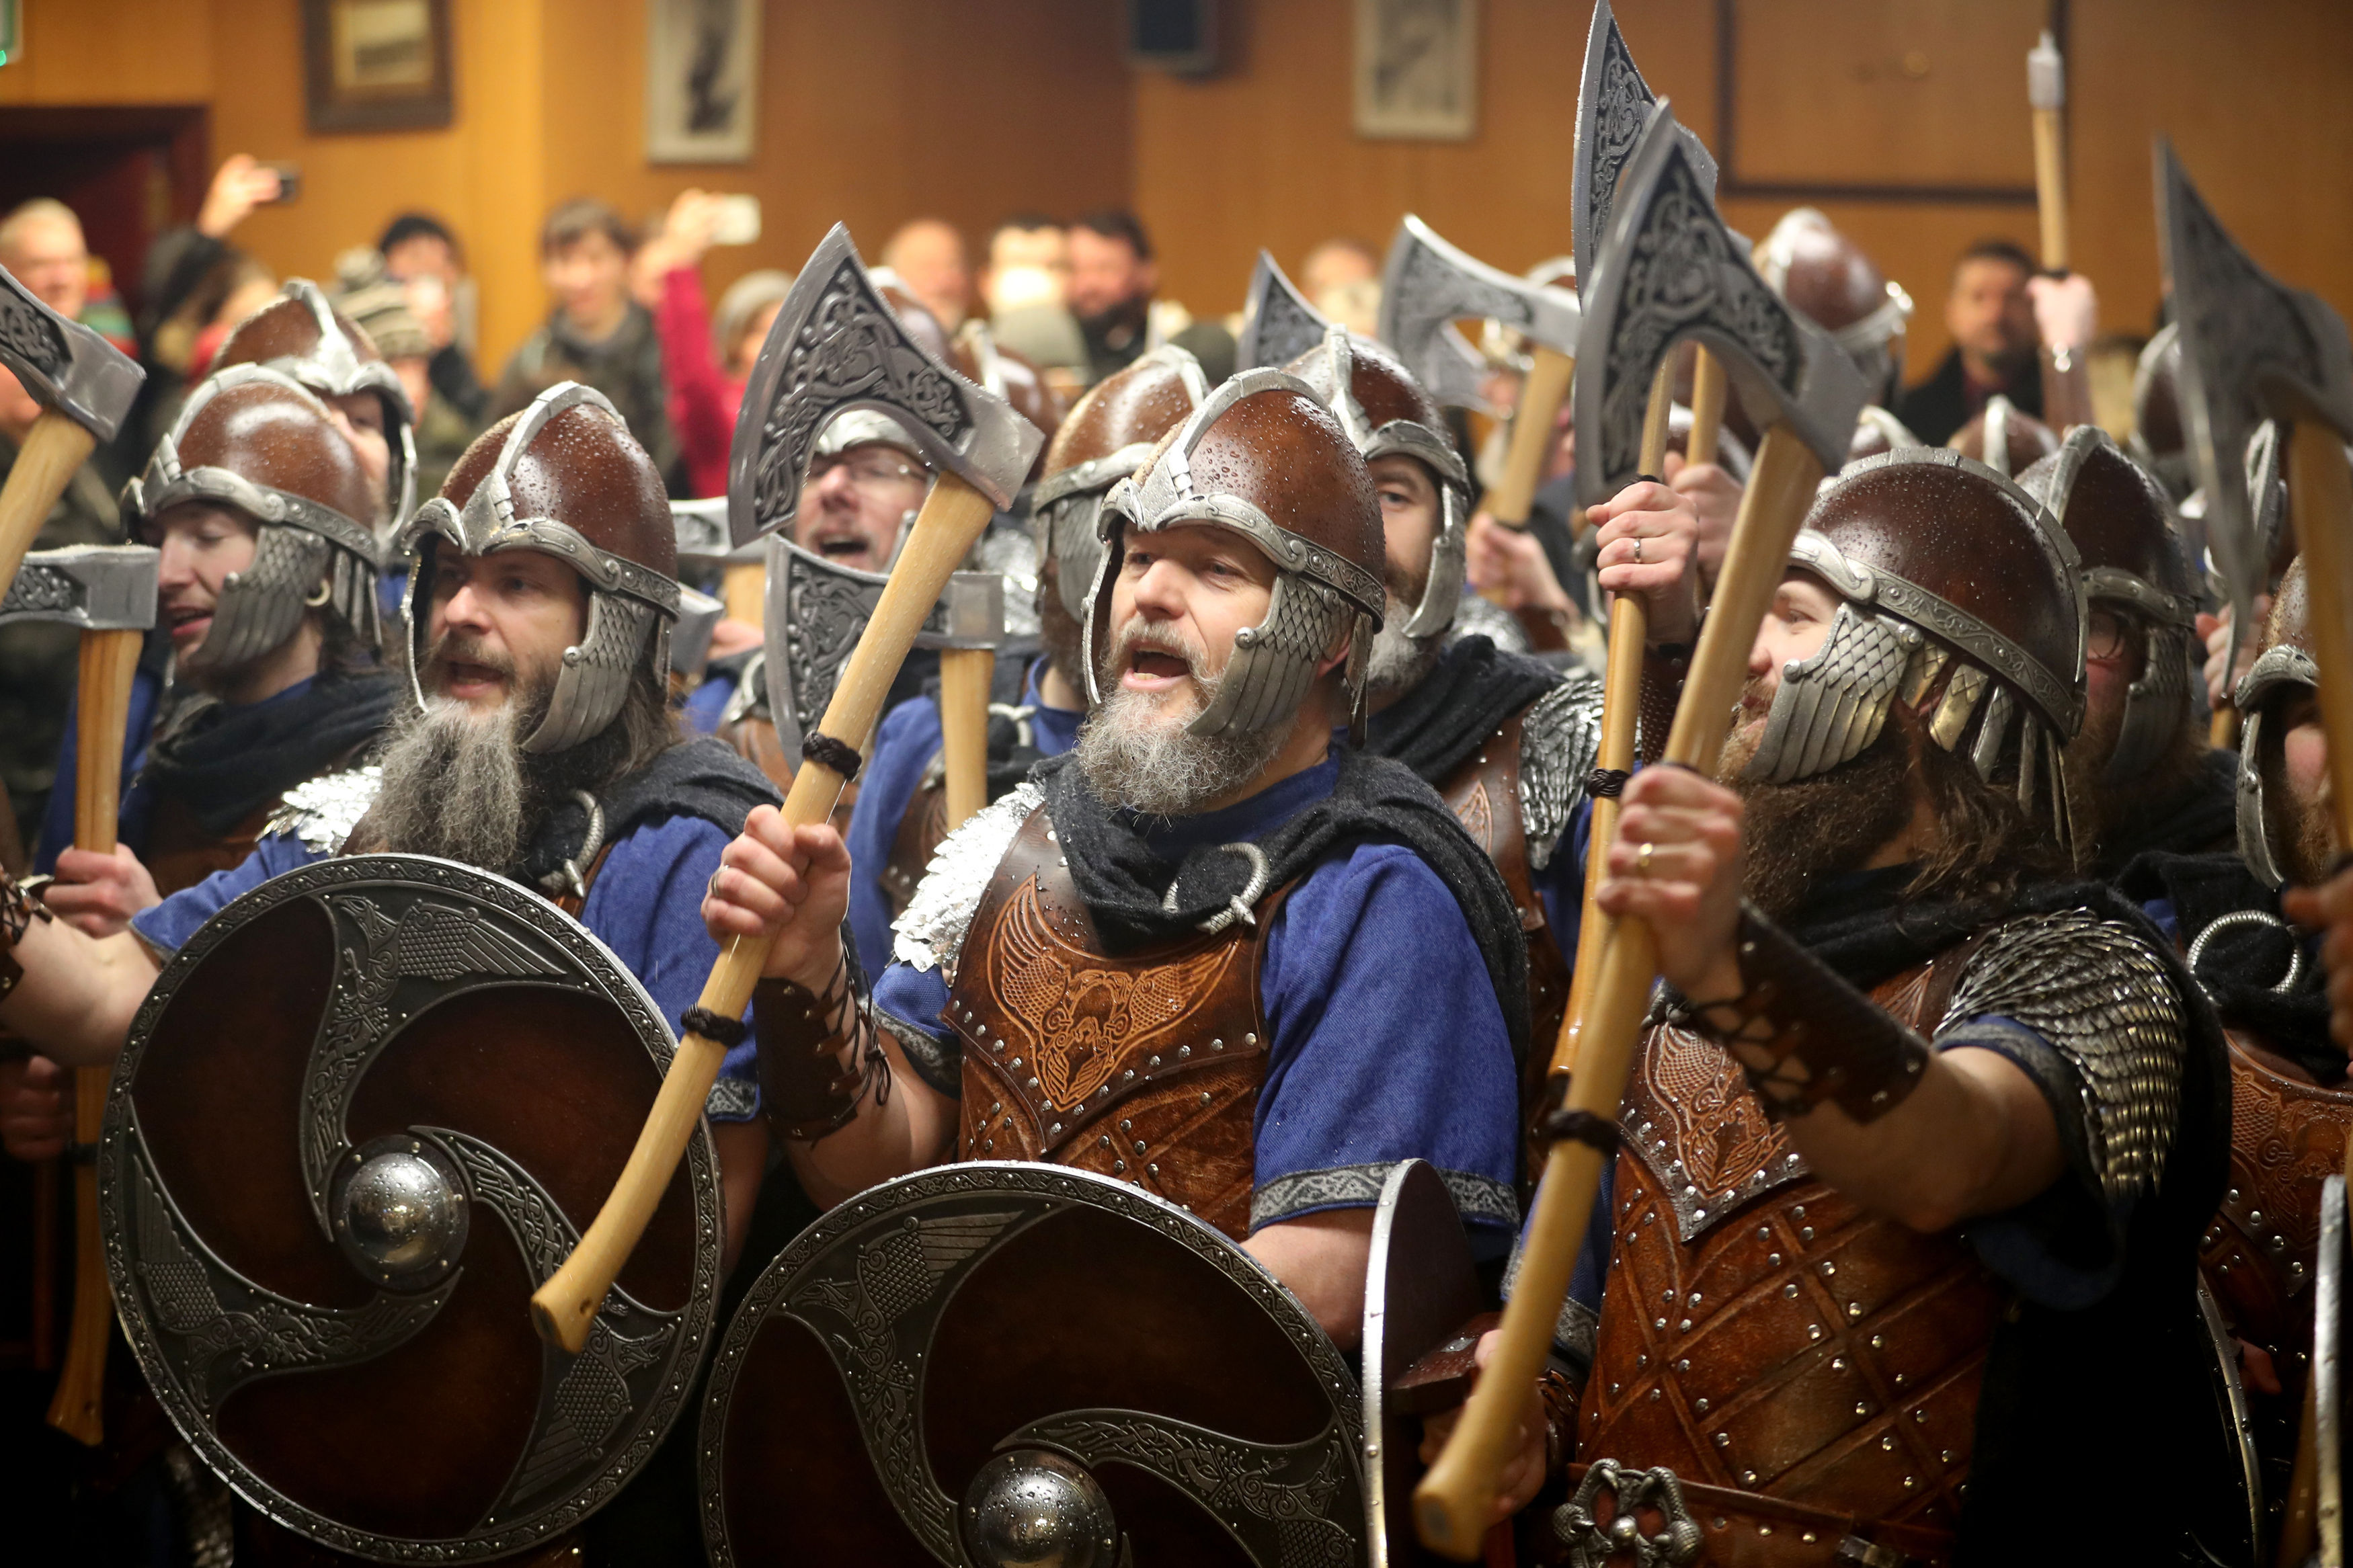 The Jarl Squad limbering up for Up Helly Aa (Jane Barlow/PA)